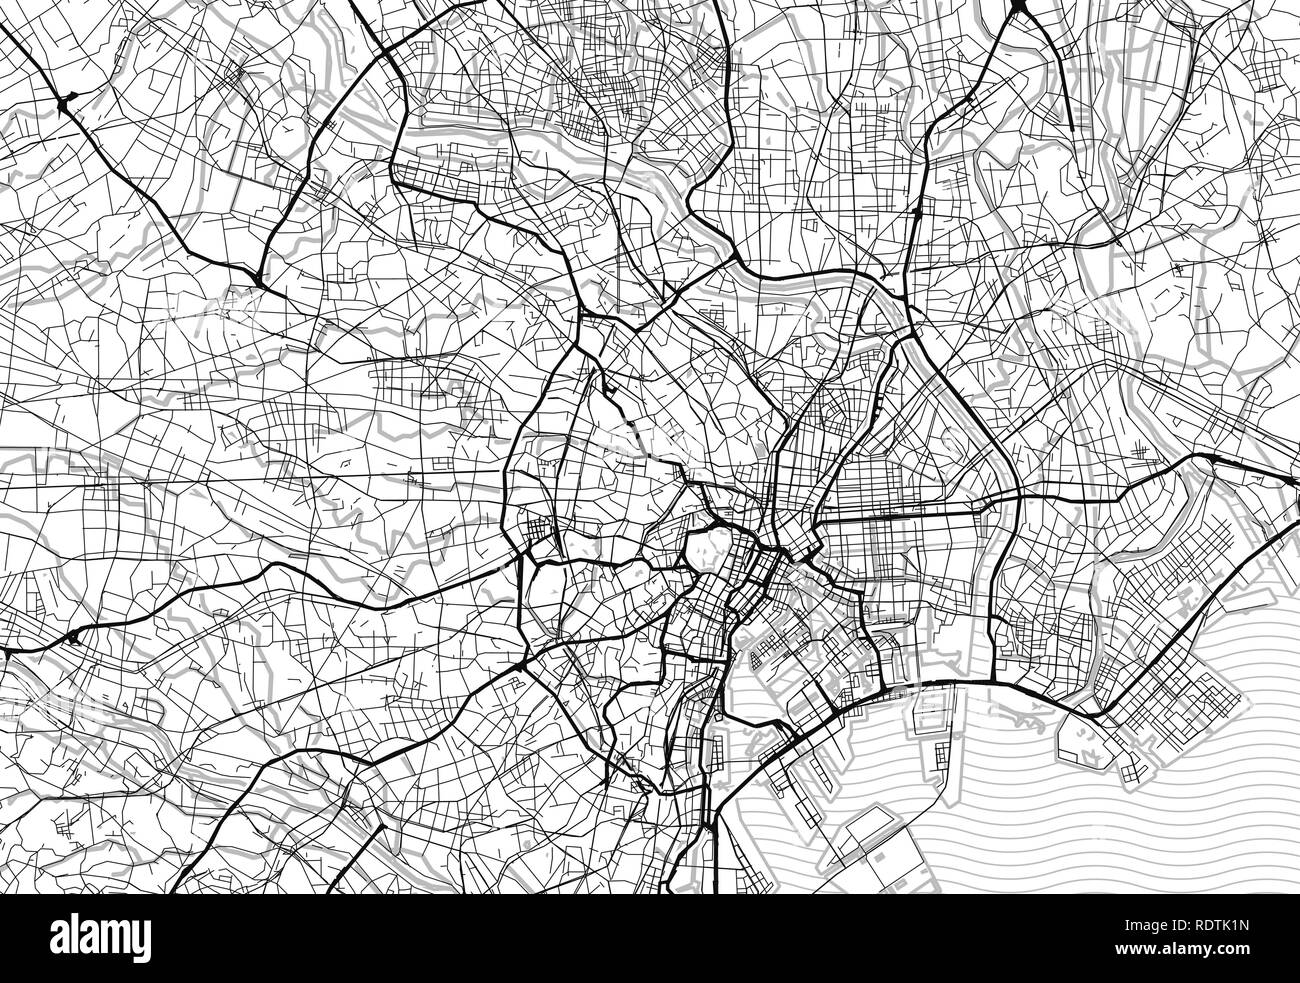 Japan Map Black and White Stock Photos & Images - Alamy on physical map of tokyo, subway map of tokyo, climate map of tokyo, clear map of tokyo, blank map japan, rail map of tokyo, satellite map of tokyo, political map of tokyo, topographical map of tokyo,